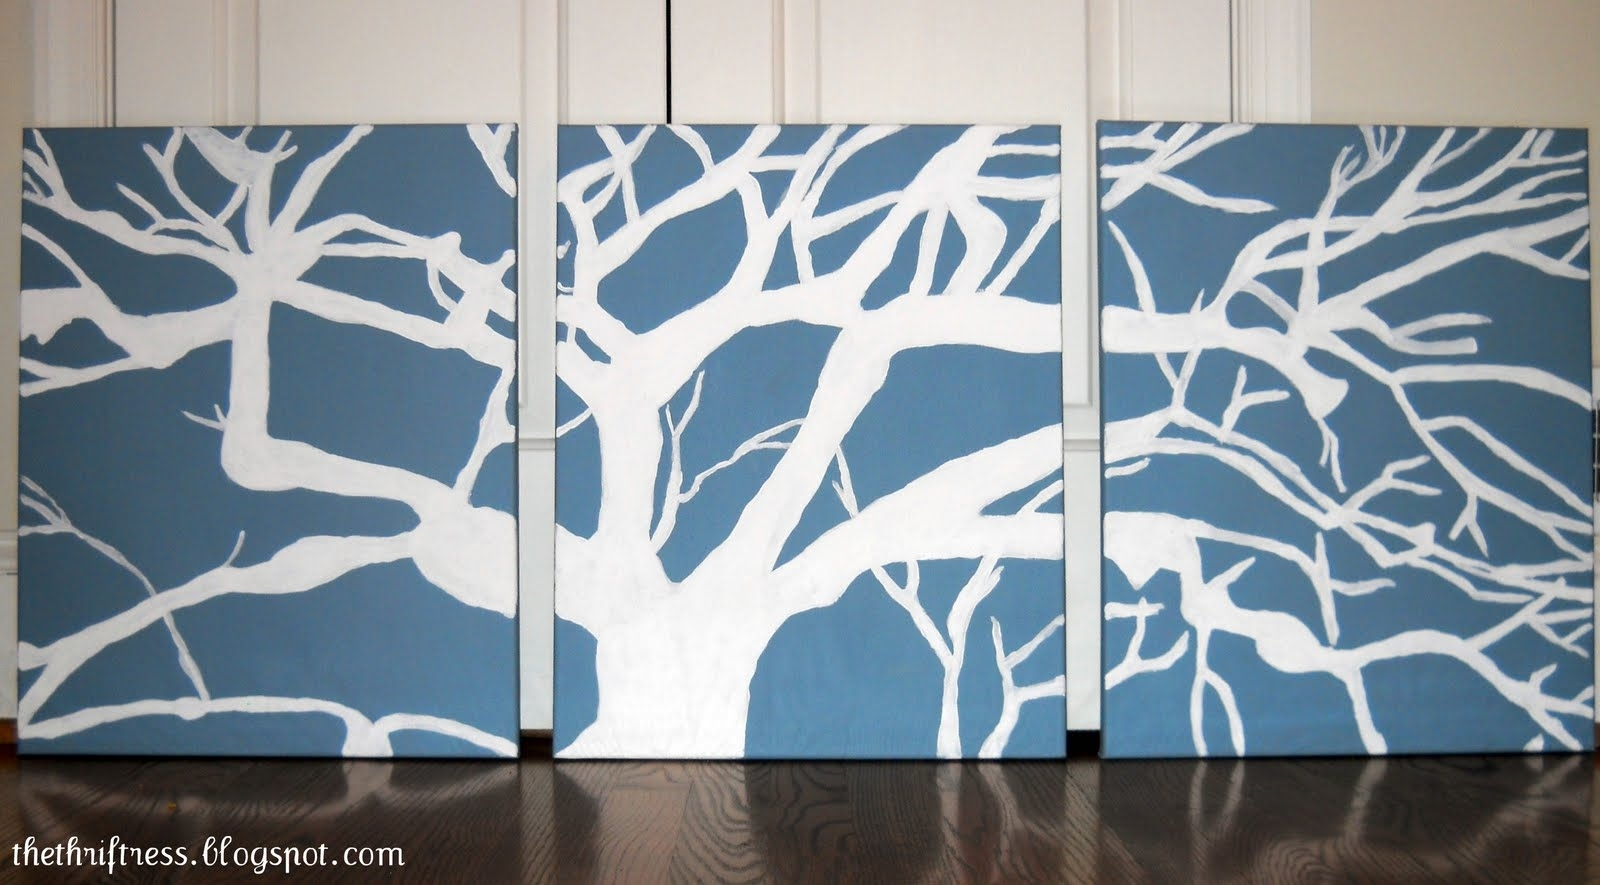 Diy Wall Art Stencils Paint Fabric – Dma Homes | #37854 Intended For Newest Diy Fabric Wall Art Panels (View 5 of 15)